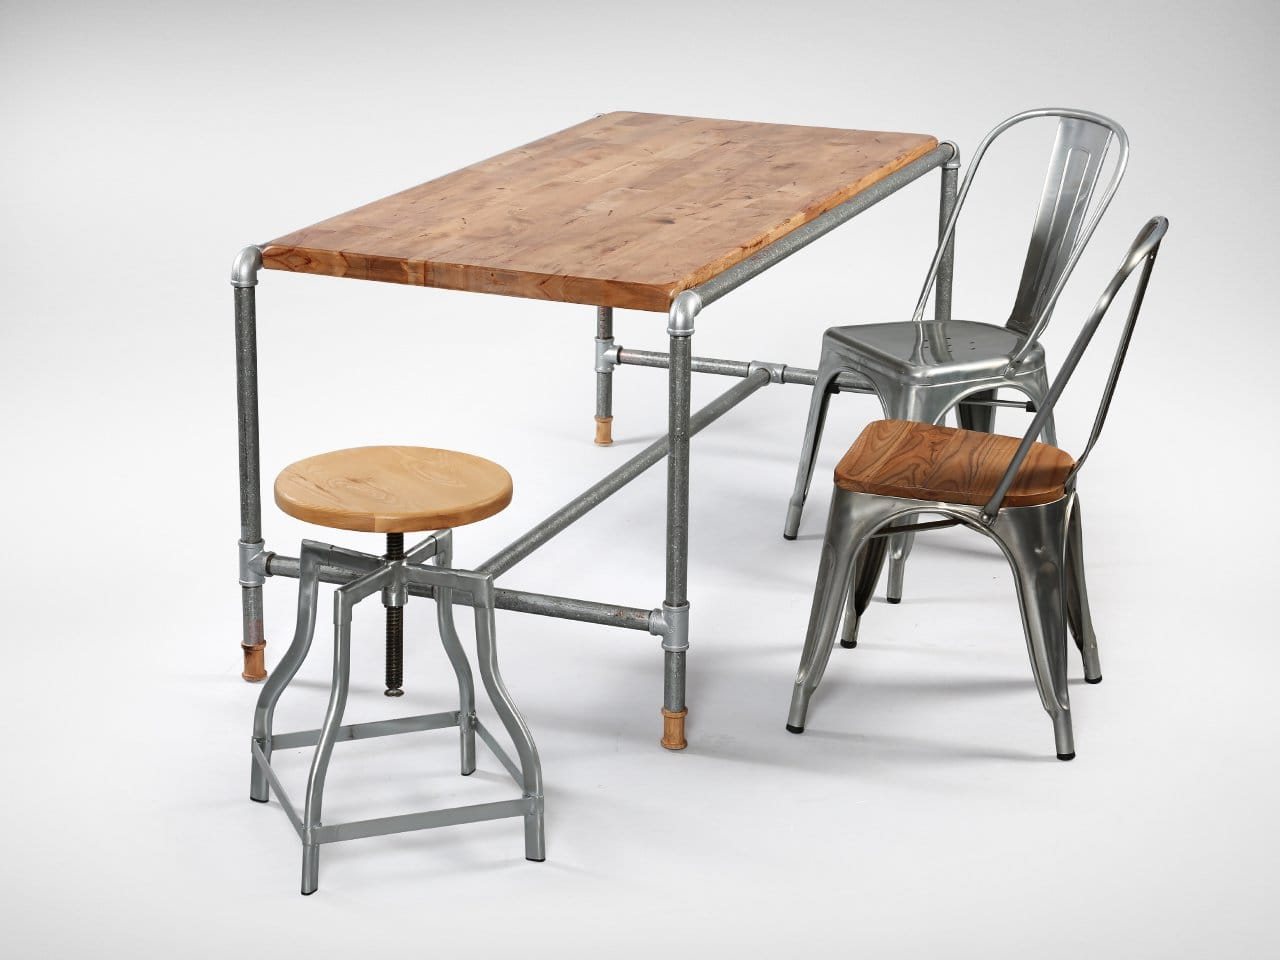 [Pipe Dining Table, Industrial Stool Wood+Galvanised, Dojo Sidechair Wood+Galvanised & Dojo Sidechair Galvanised]<br />